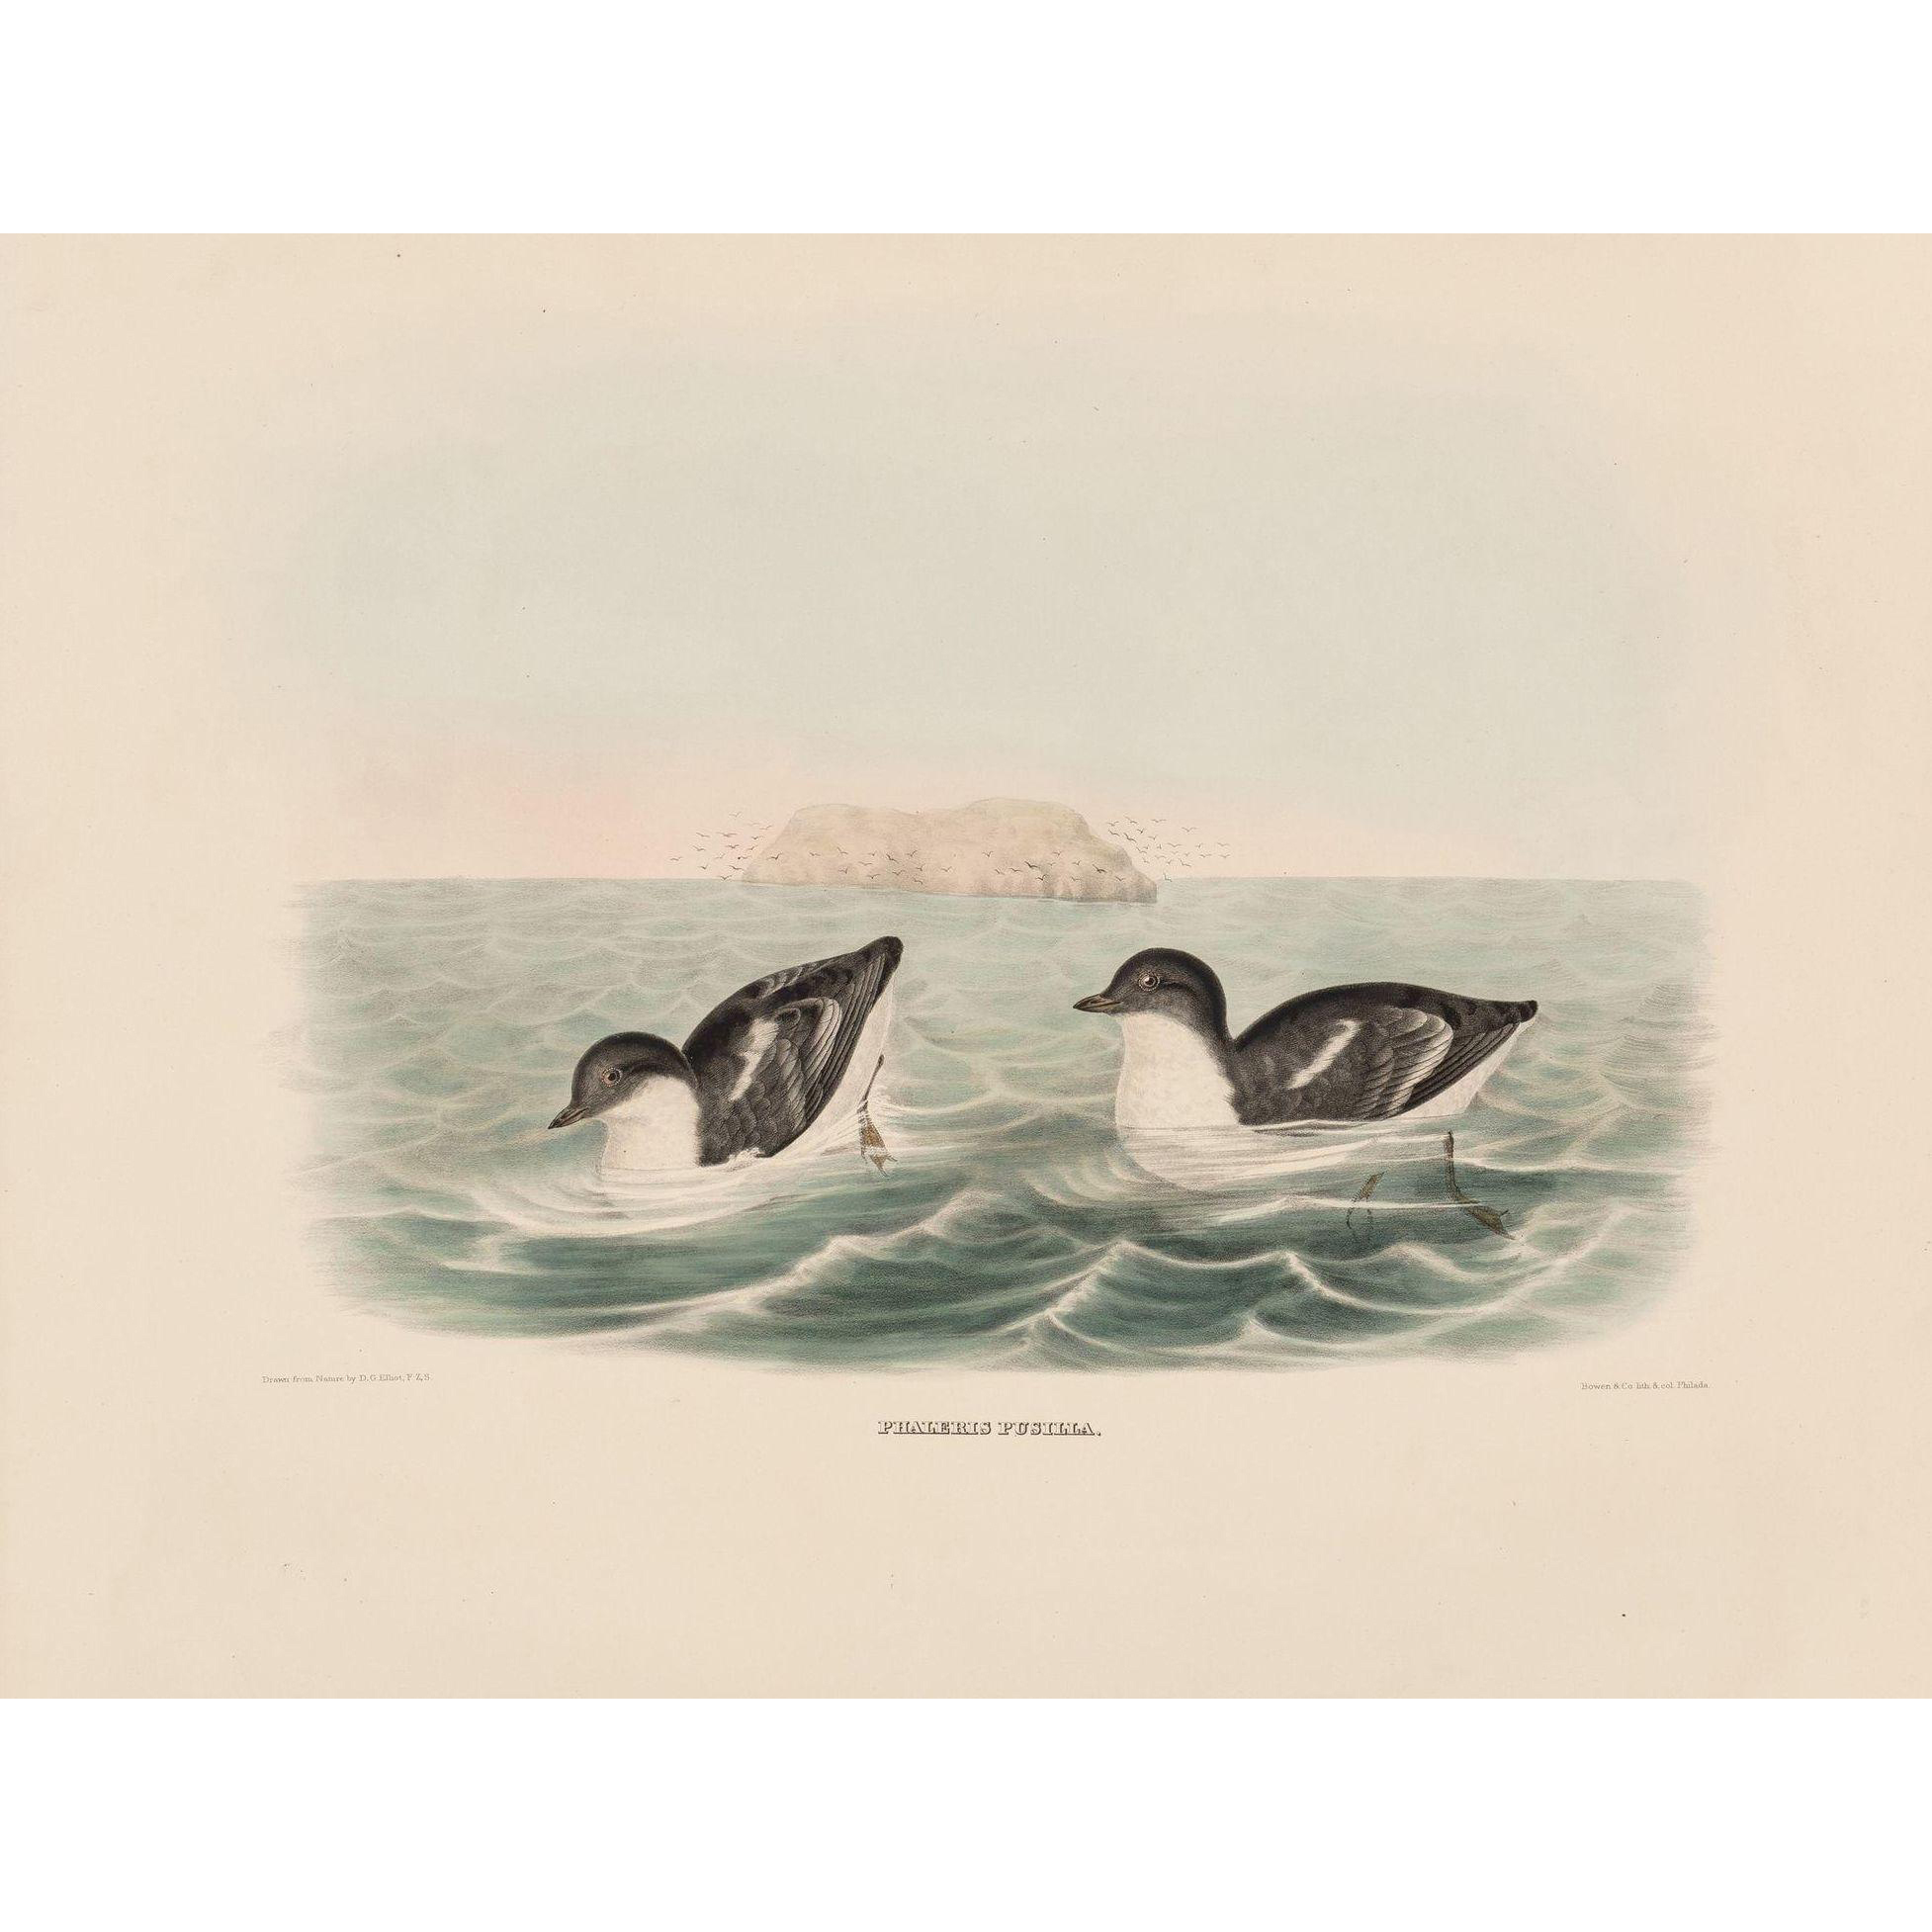 """DANIEL GIRARD ELLIOT (American, 1830-1907) - Antique Hand-Colored Lithograph """"Phaleris Pusilla"""" from The New and Heretofore Unfigured Species of the Birds of North America Circa 1869"""